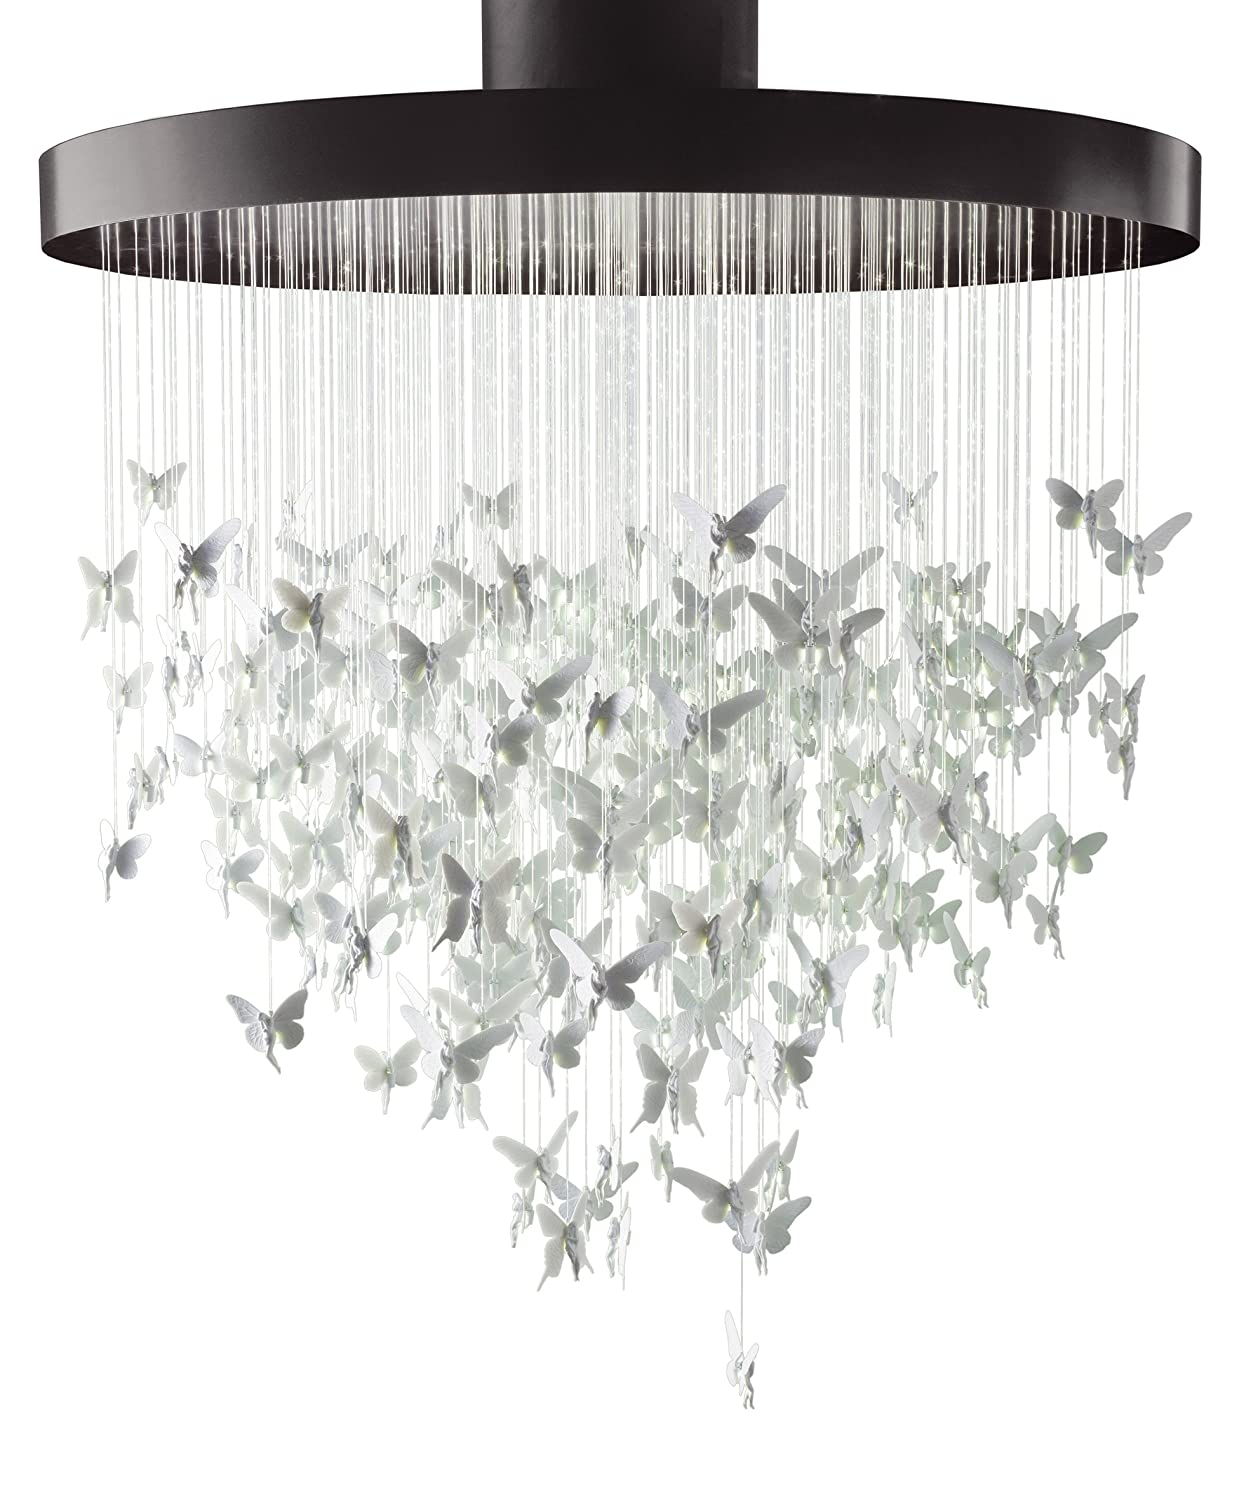 Amazon.com: Lladro Niagara Chandelier 2 Metres: Home & Kitchen